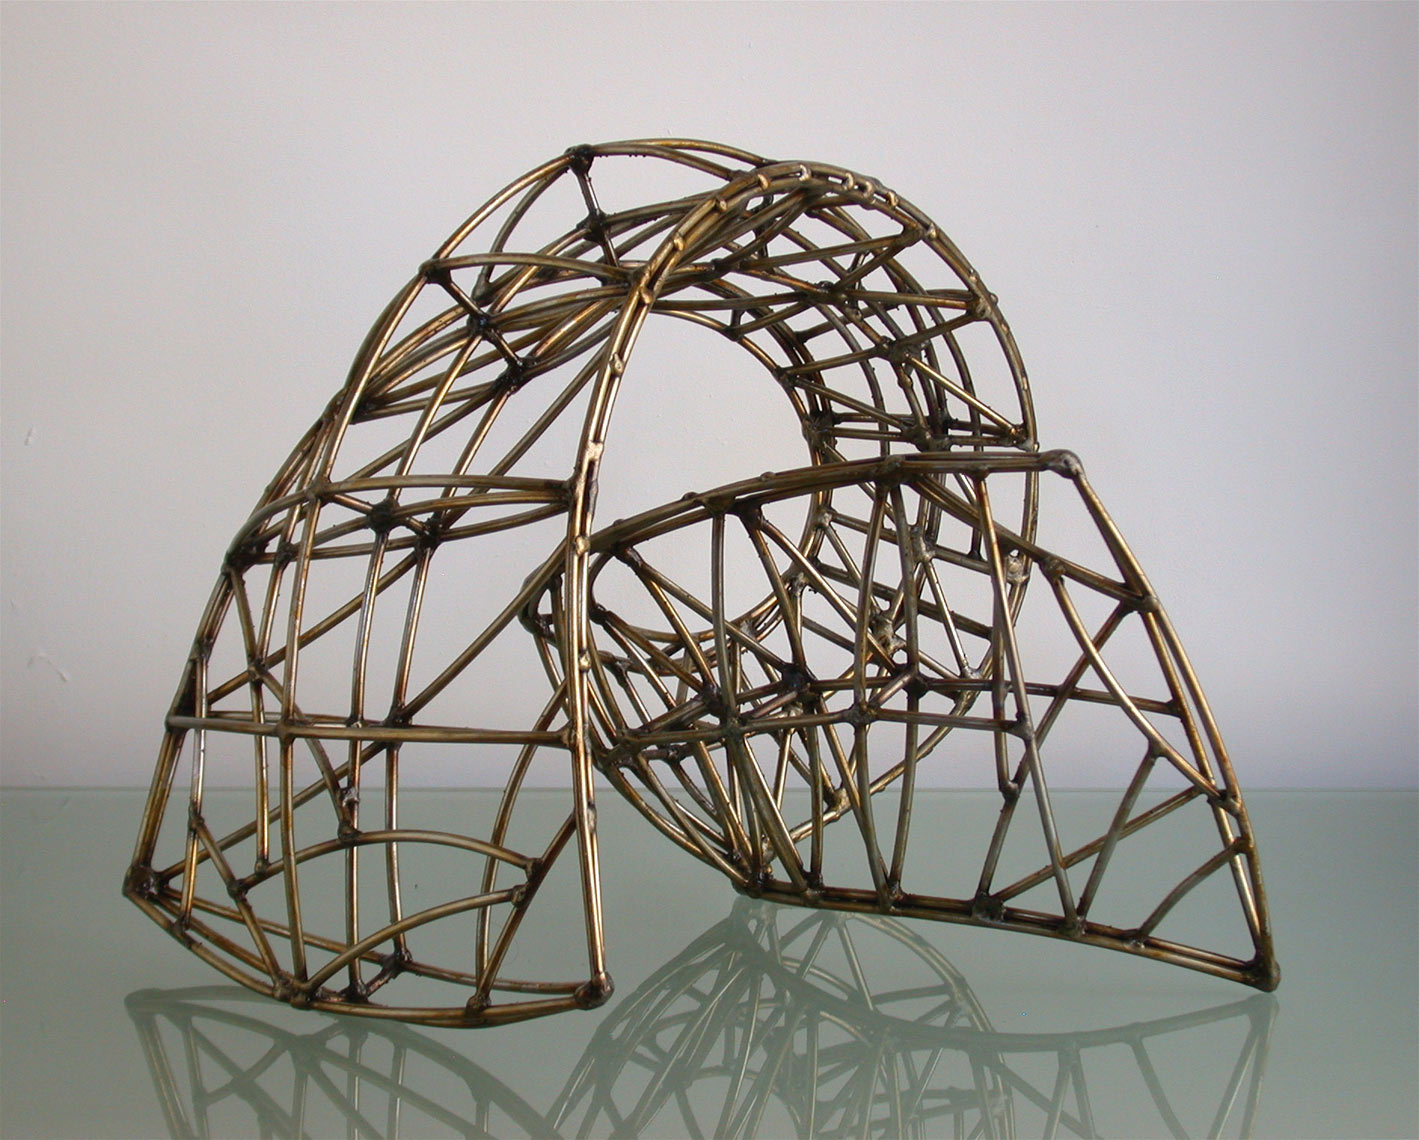 Torsion I wire-frame study by Peter Diepenbrock